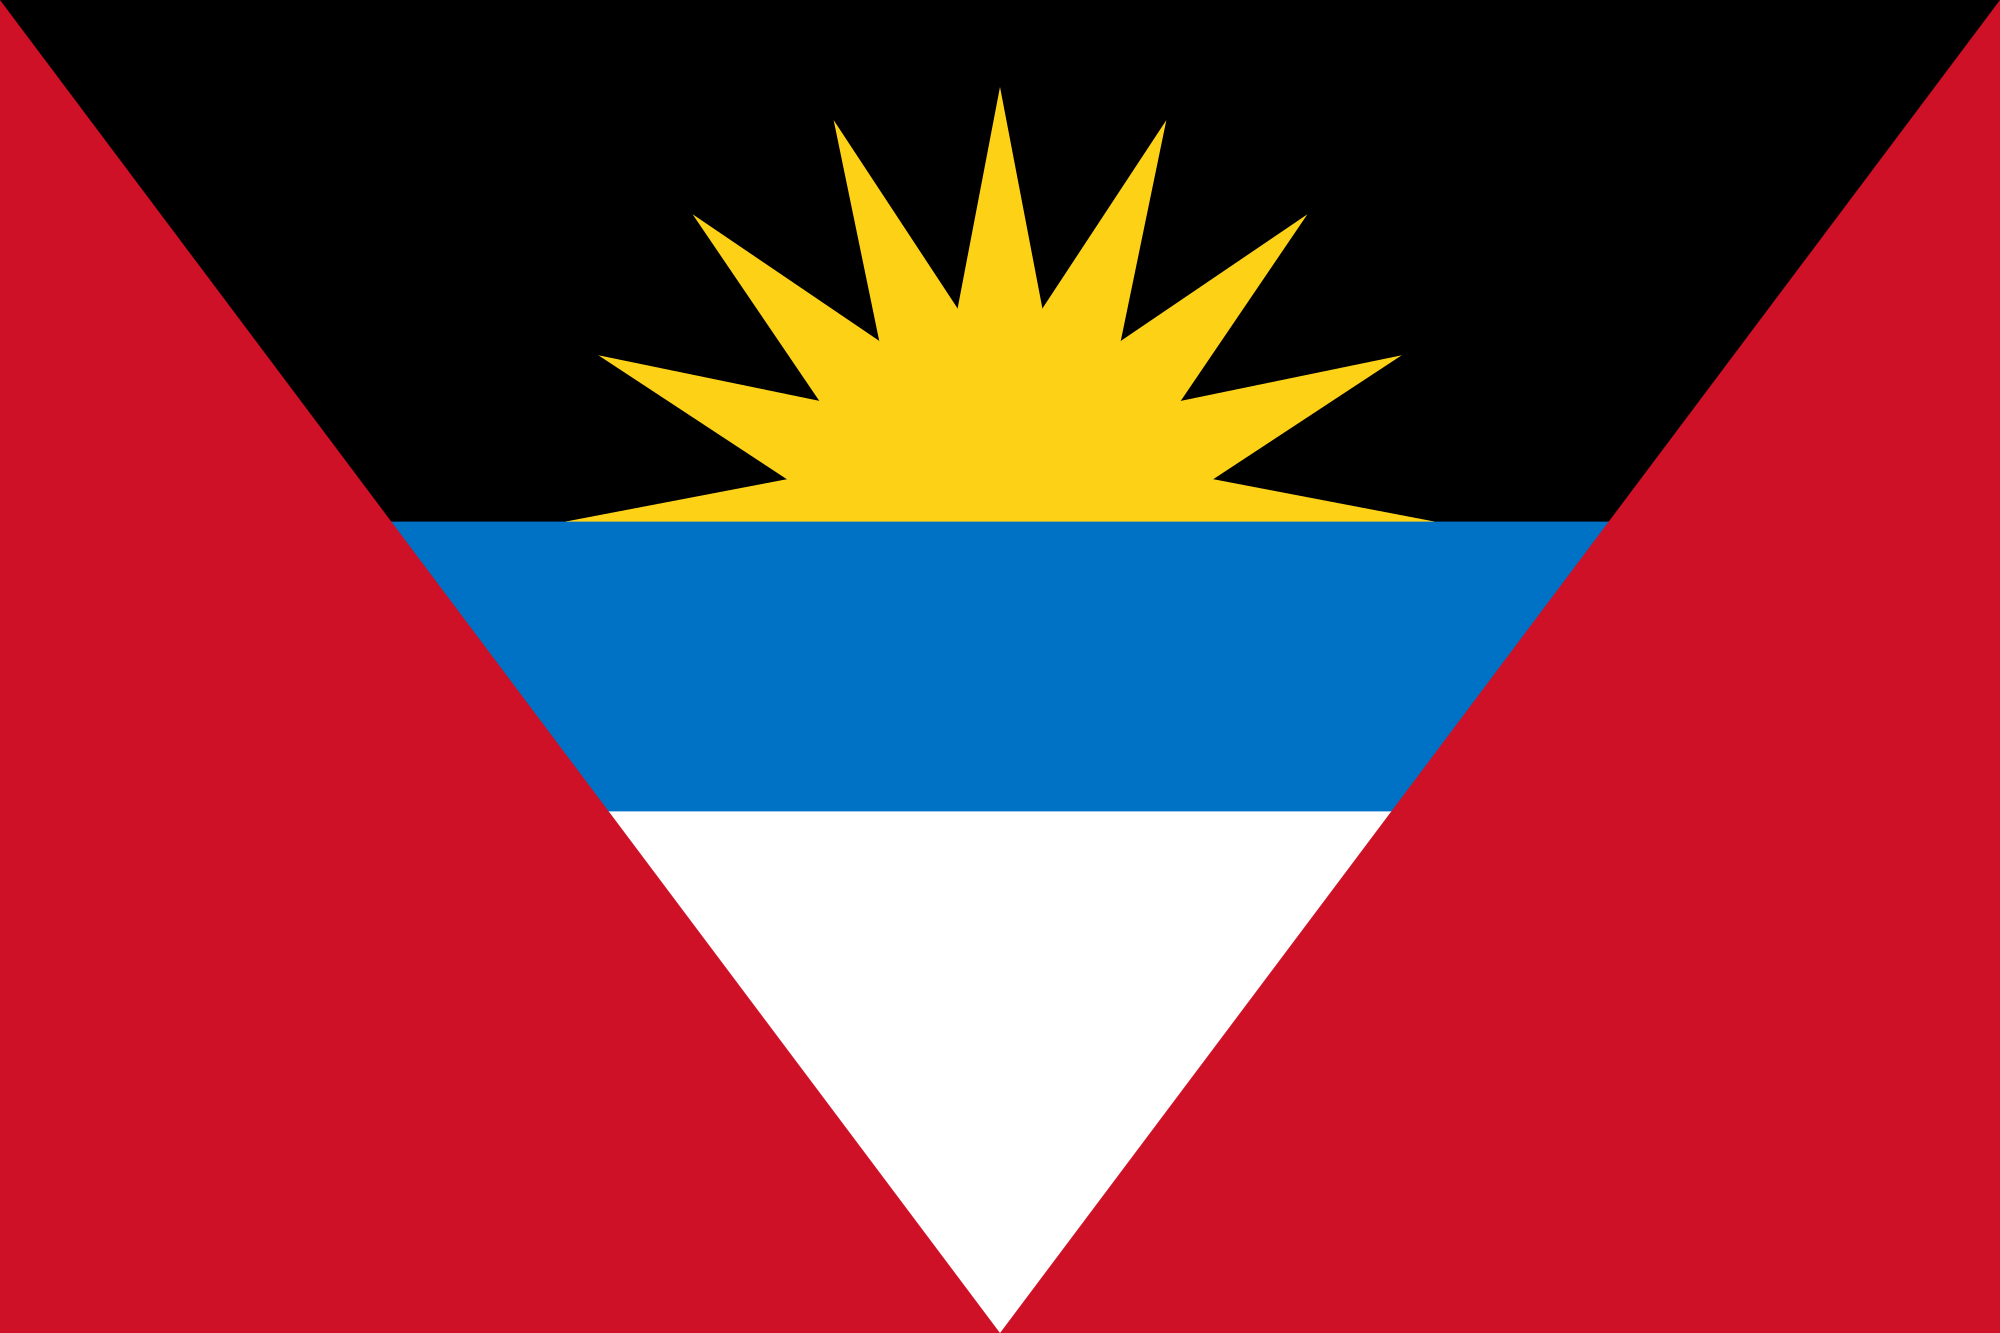 Antigua_e_Barbuda_flag